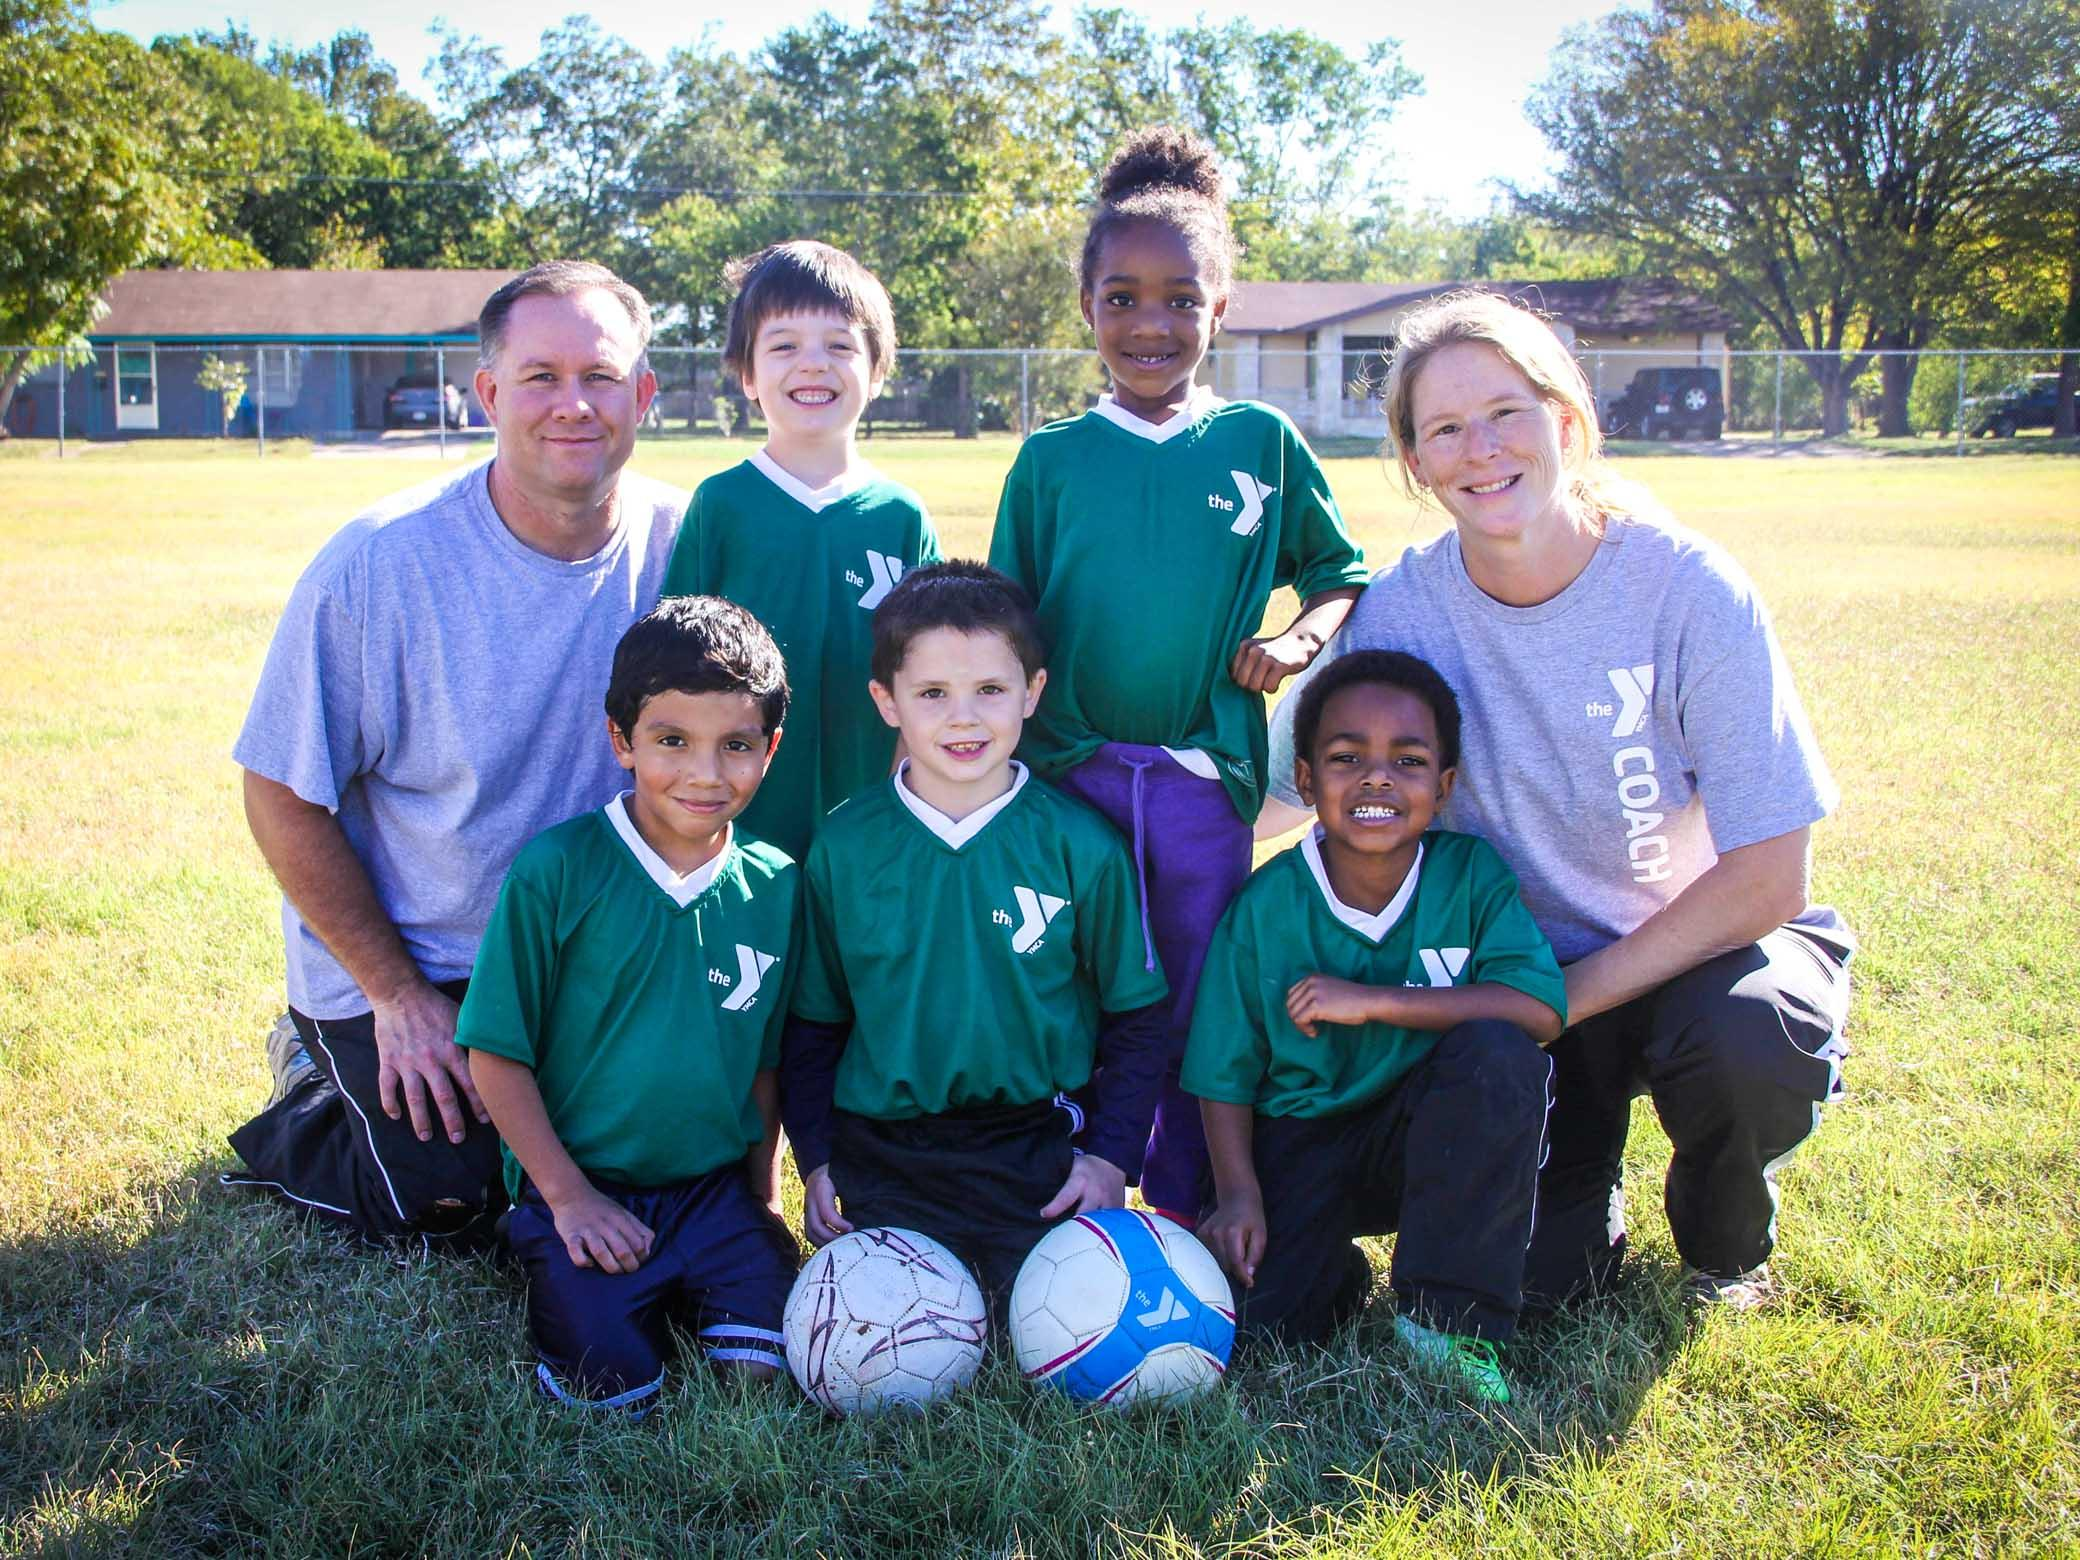 Youth soccer team poses for photo